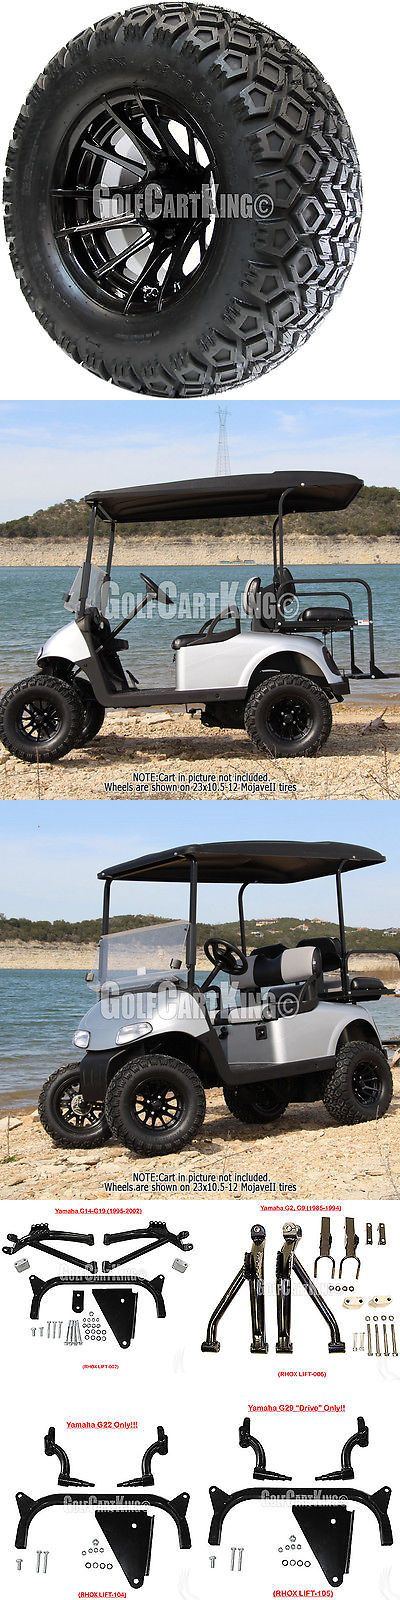 Other Golf Clothing 158939: 12 Rhox Rx104 Wheel With Tire Combo And Yamaha Golf Cart Lift Kit -> BUY IT NOW ONLY: $690 on eBay!